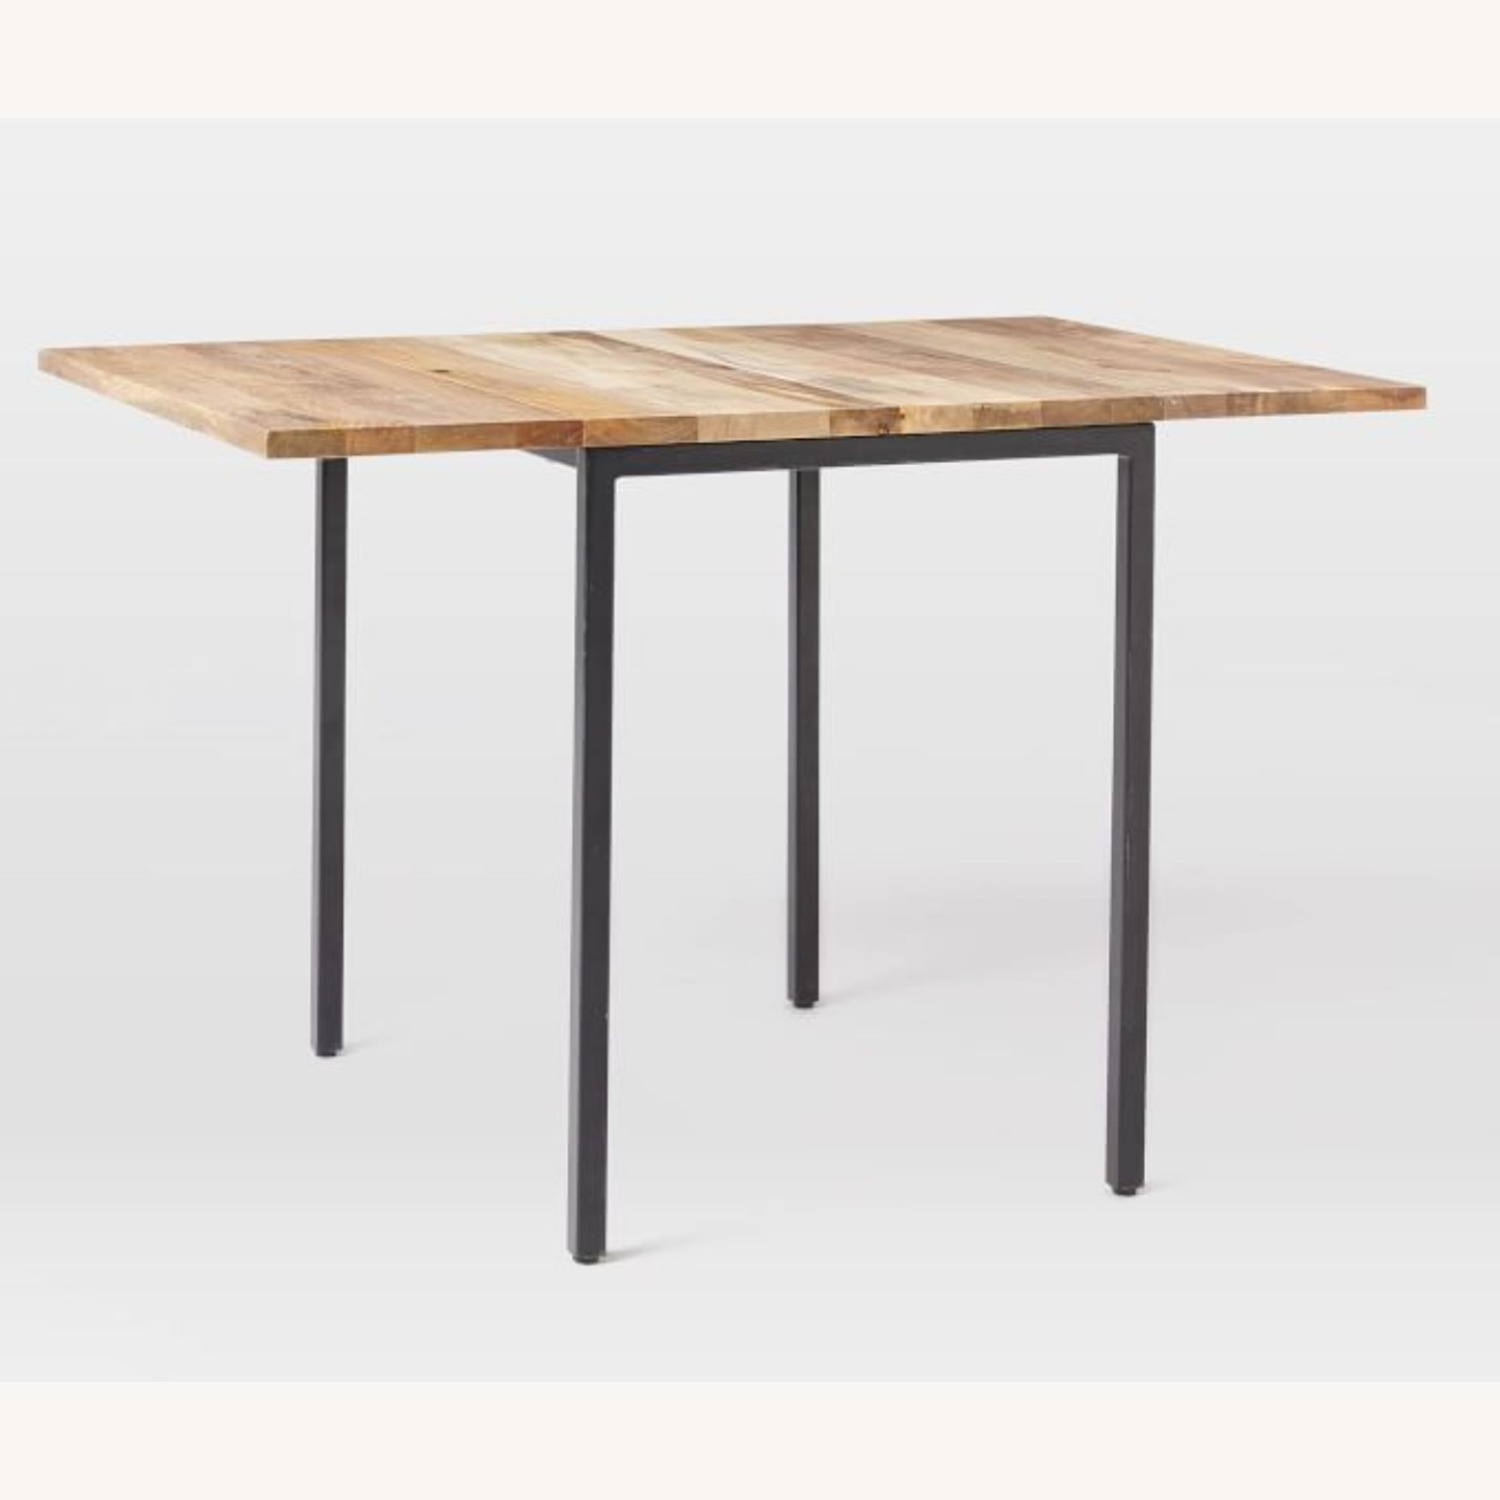 West Elm Box Frame Drop Leaf Dining Table - image-7